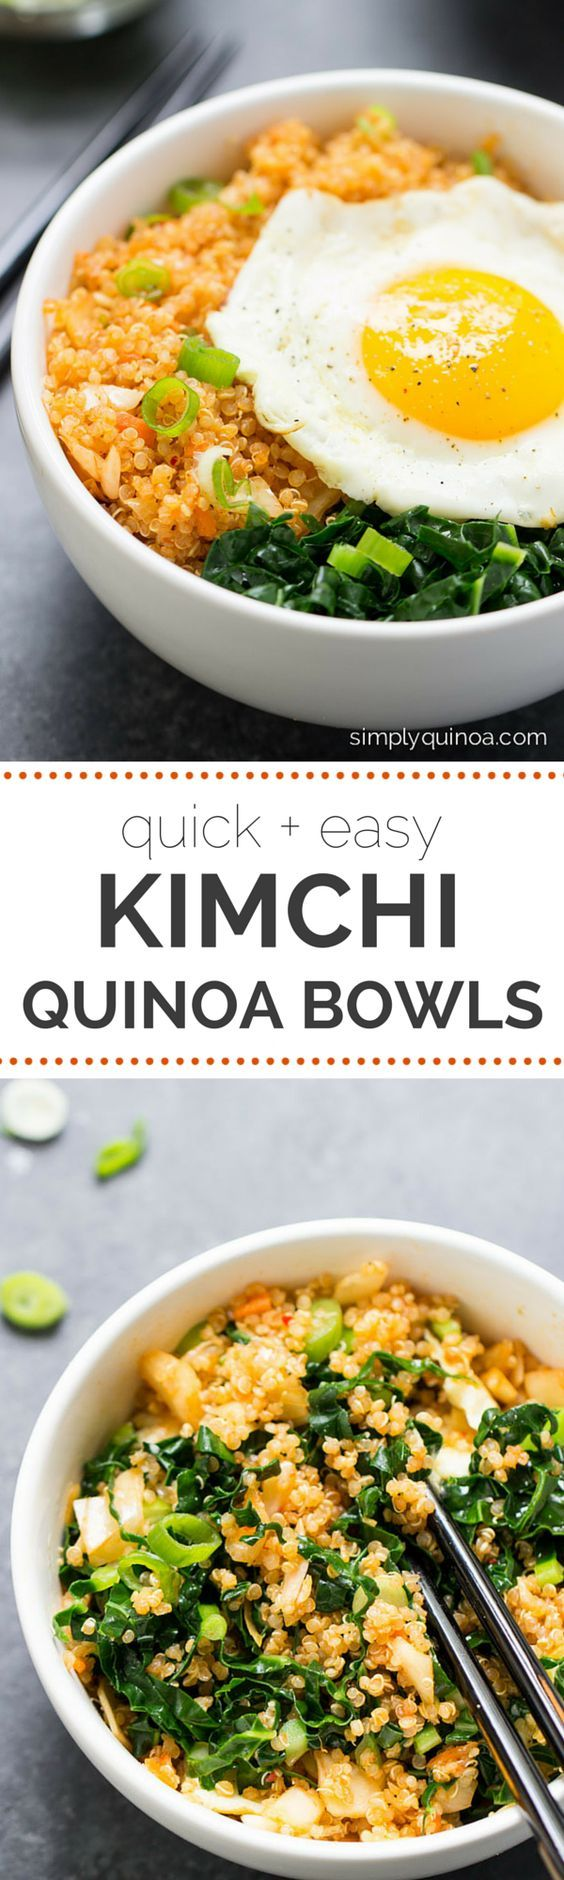 100+ Quinoa Recipes Healthy Vegetarian On Pinterest  Healthy Quinoa  Recipes, Quinoa Food And Quinoa Bowl